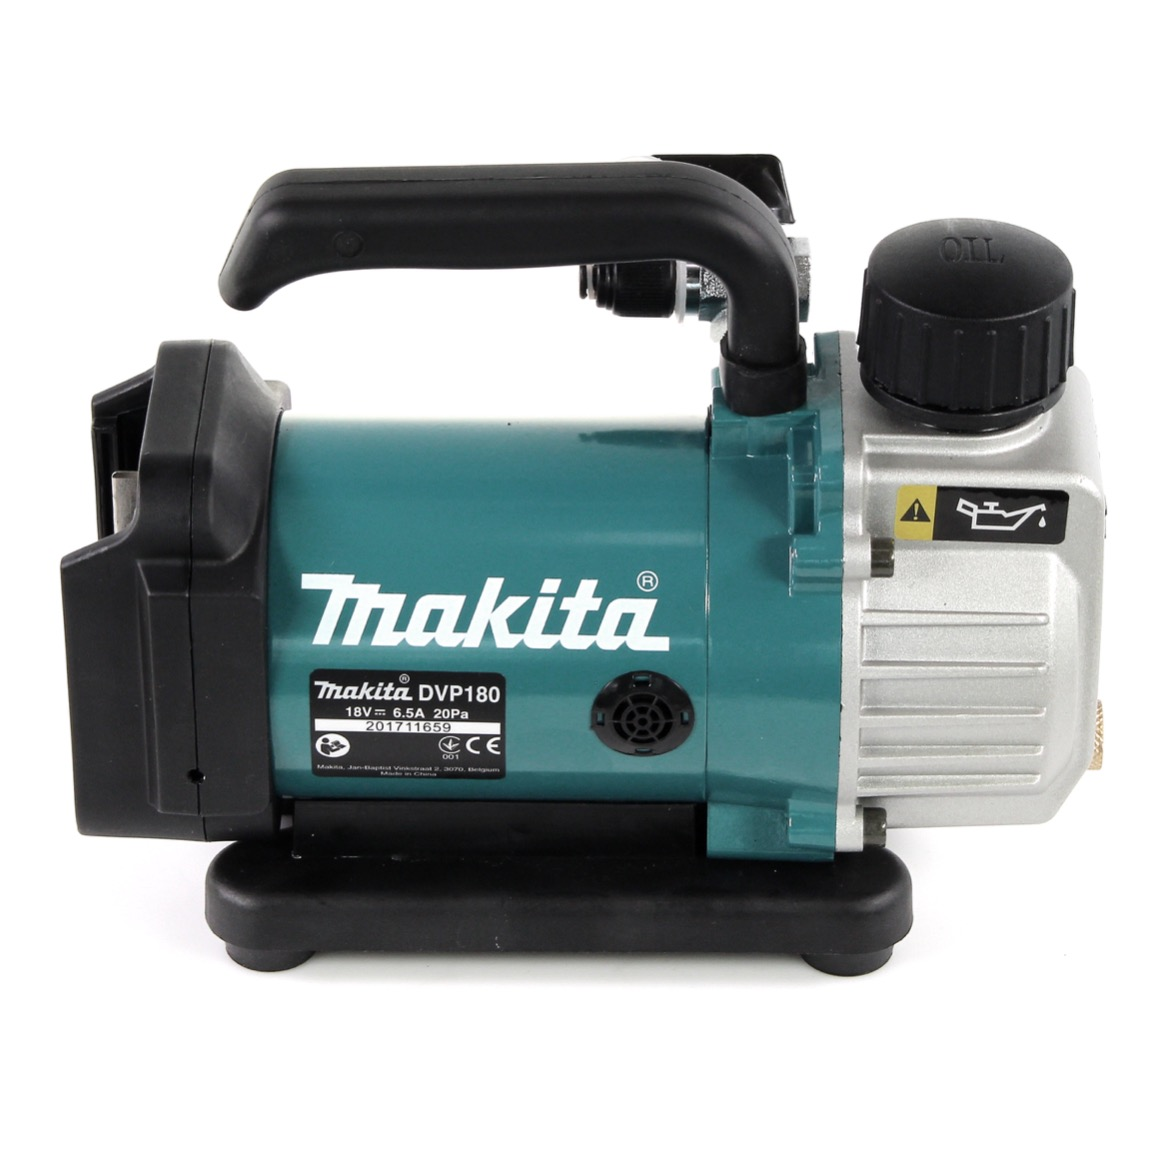 makita dvp 180 z akku vakuumpumpe 18 v vakuum pumpe kompressor ebay. Black Bedroom Furniture Sets. Home Design Ideas